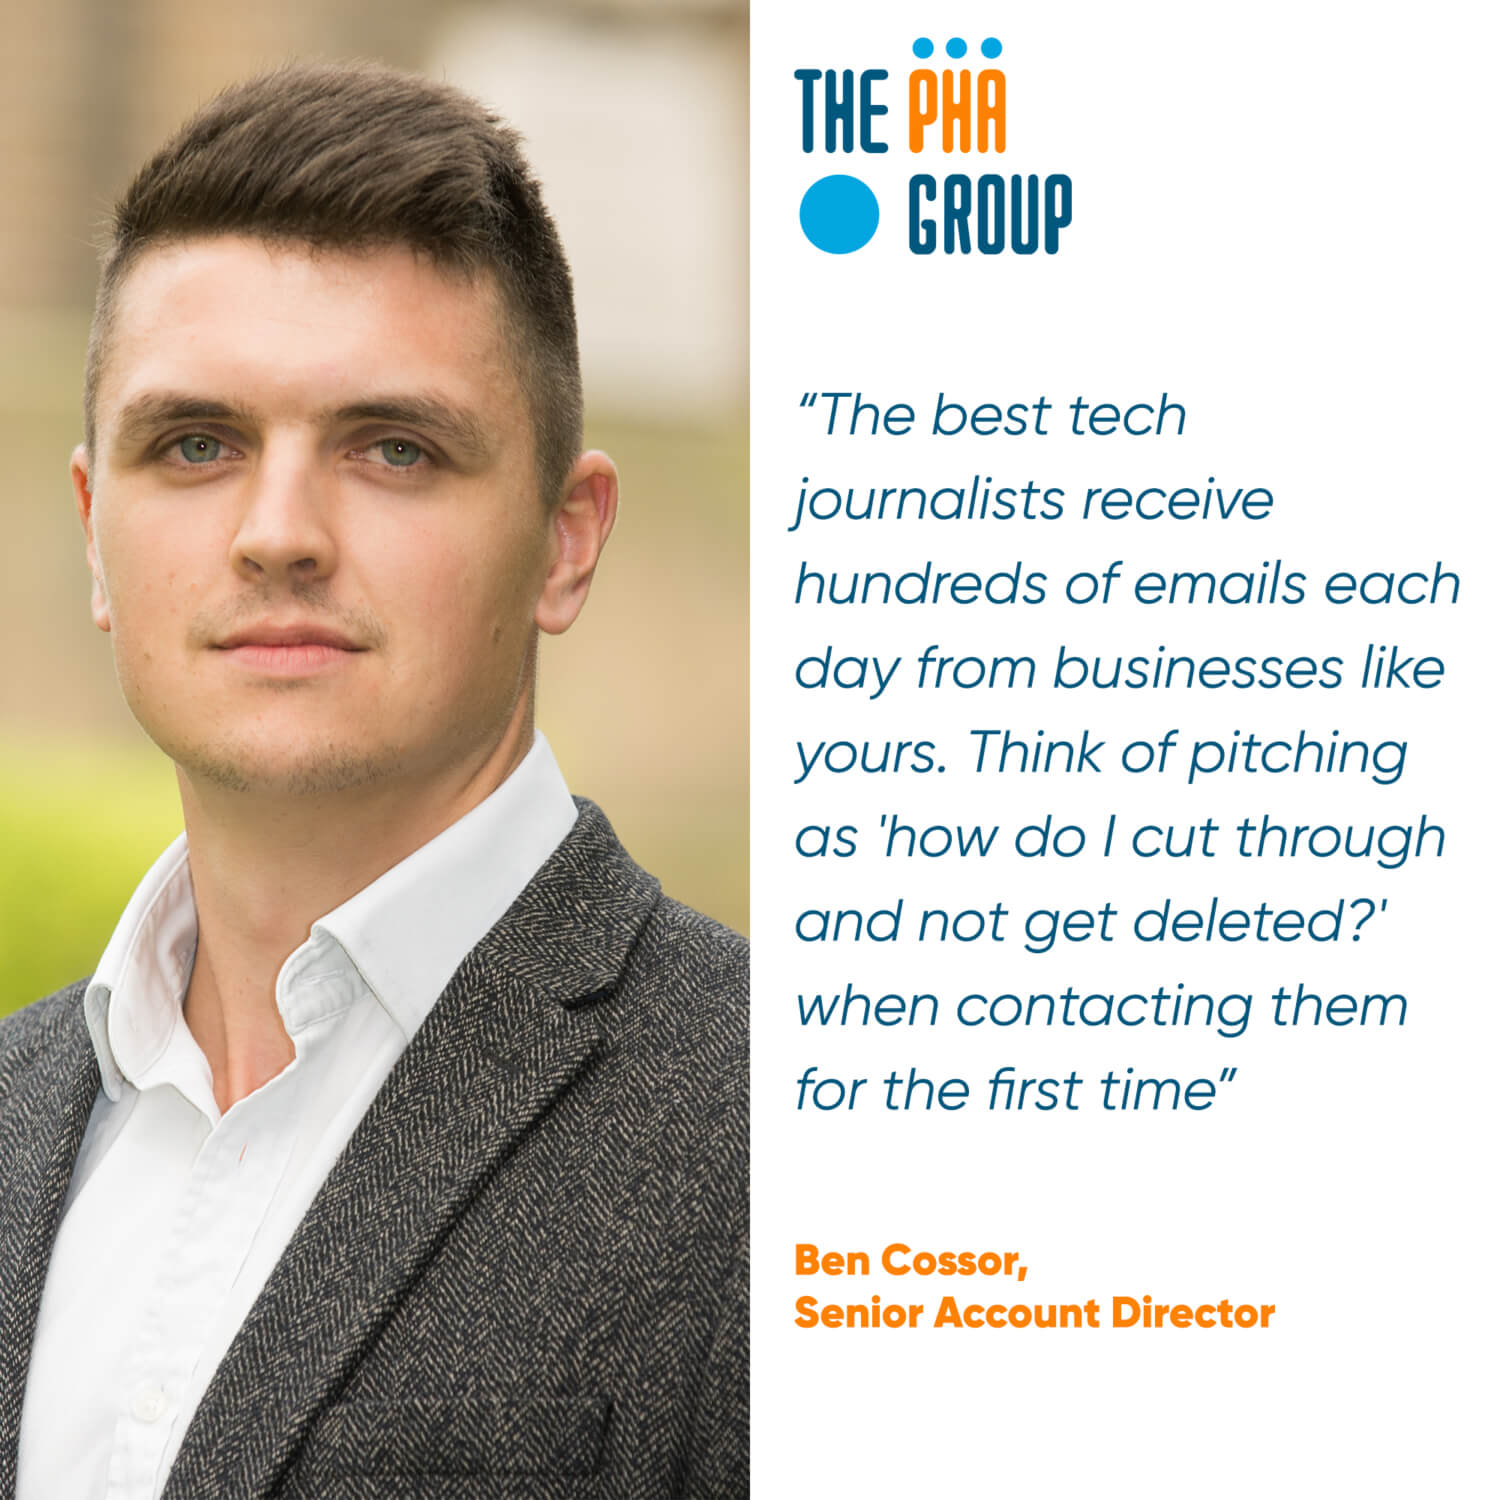 Ben Cossor, Senior Account Director - The PHA Group